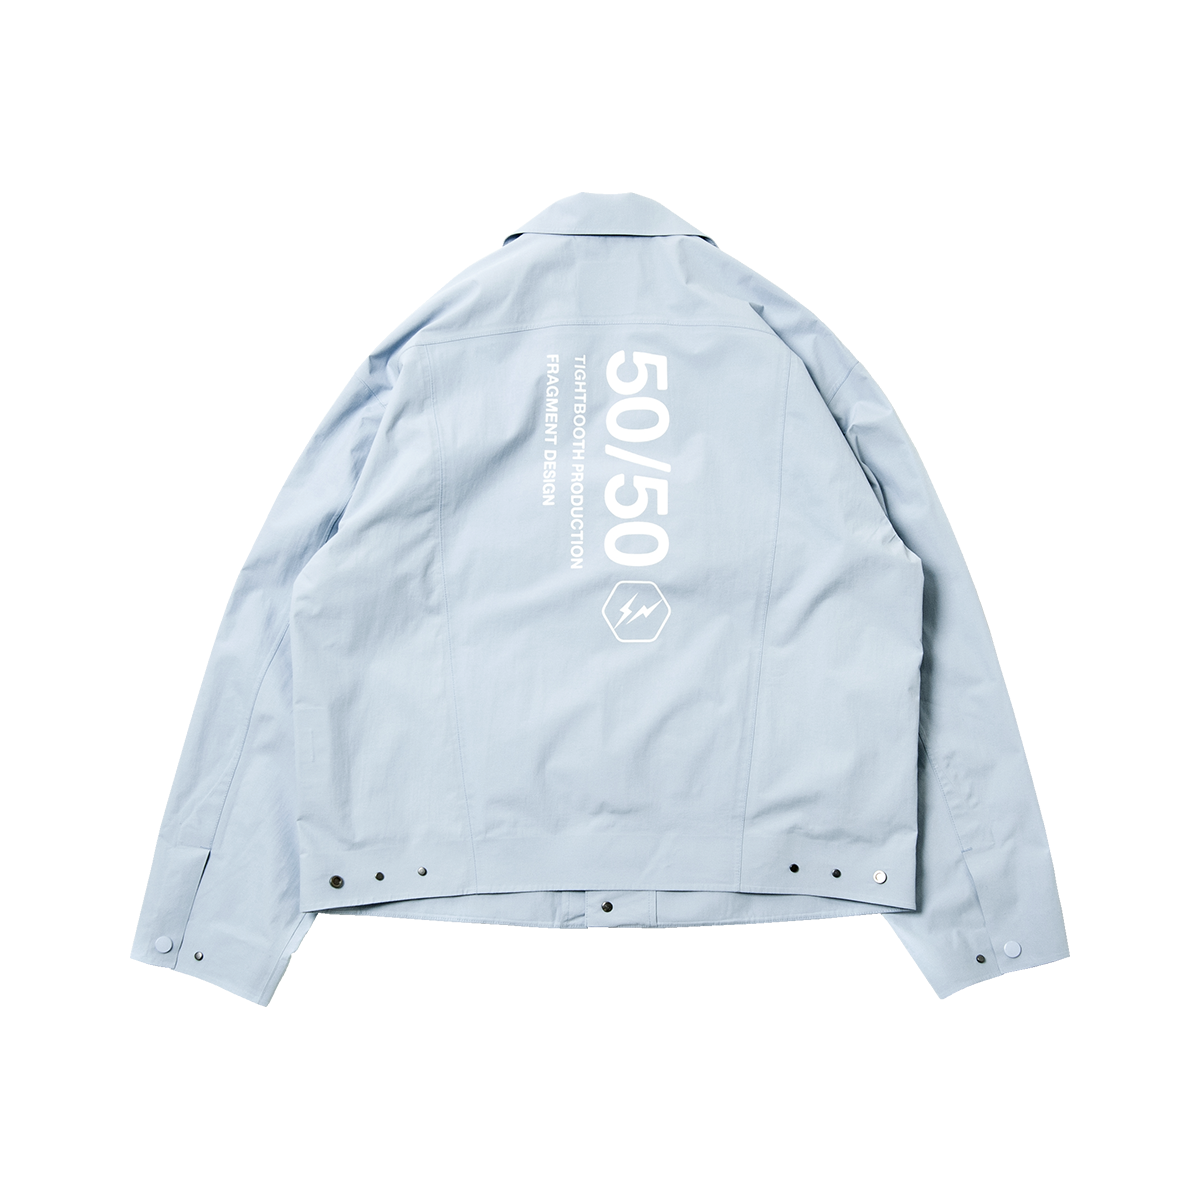 2 LAYER JACKET / Light Blue